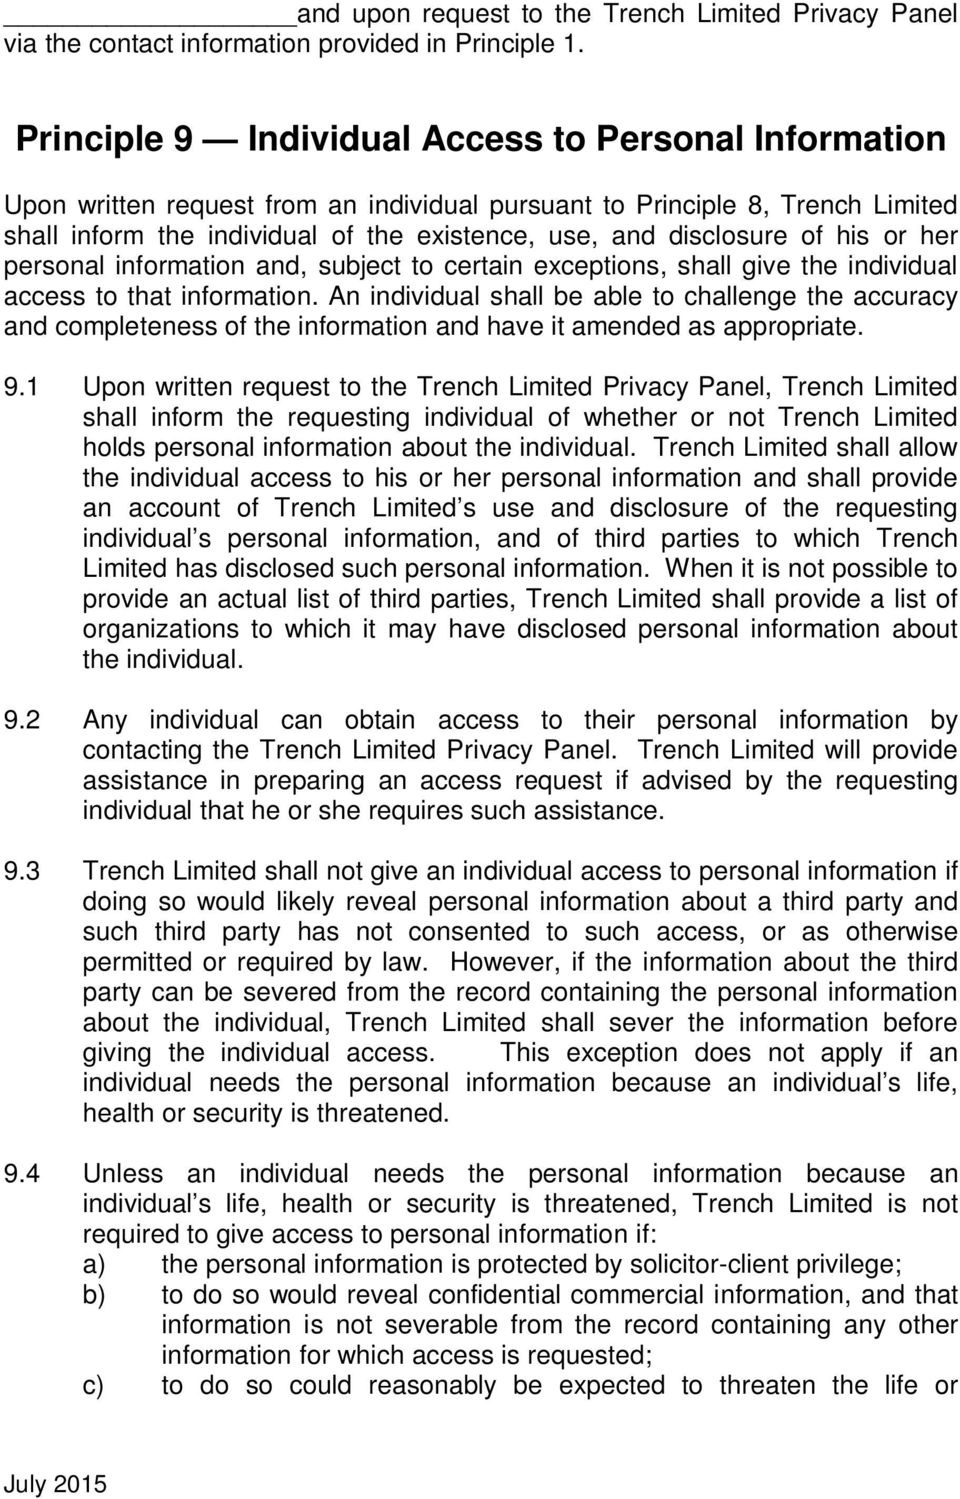 of his or her personal information and, subject to certain exceptions, shall give the individual access to that information.